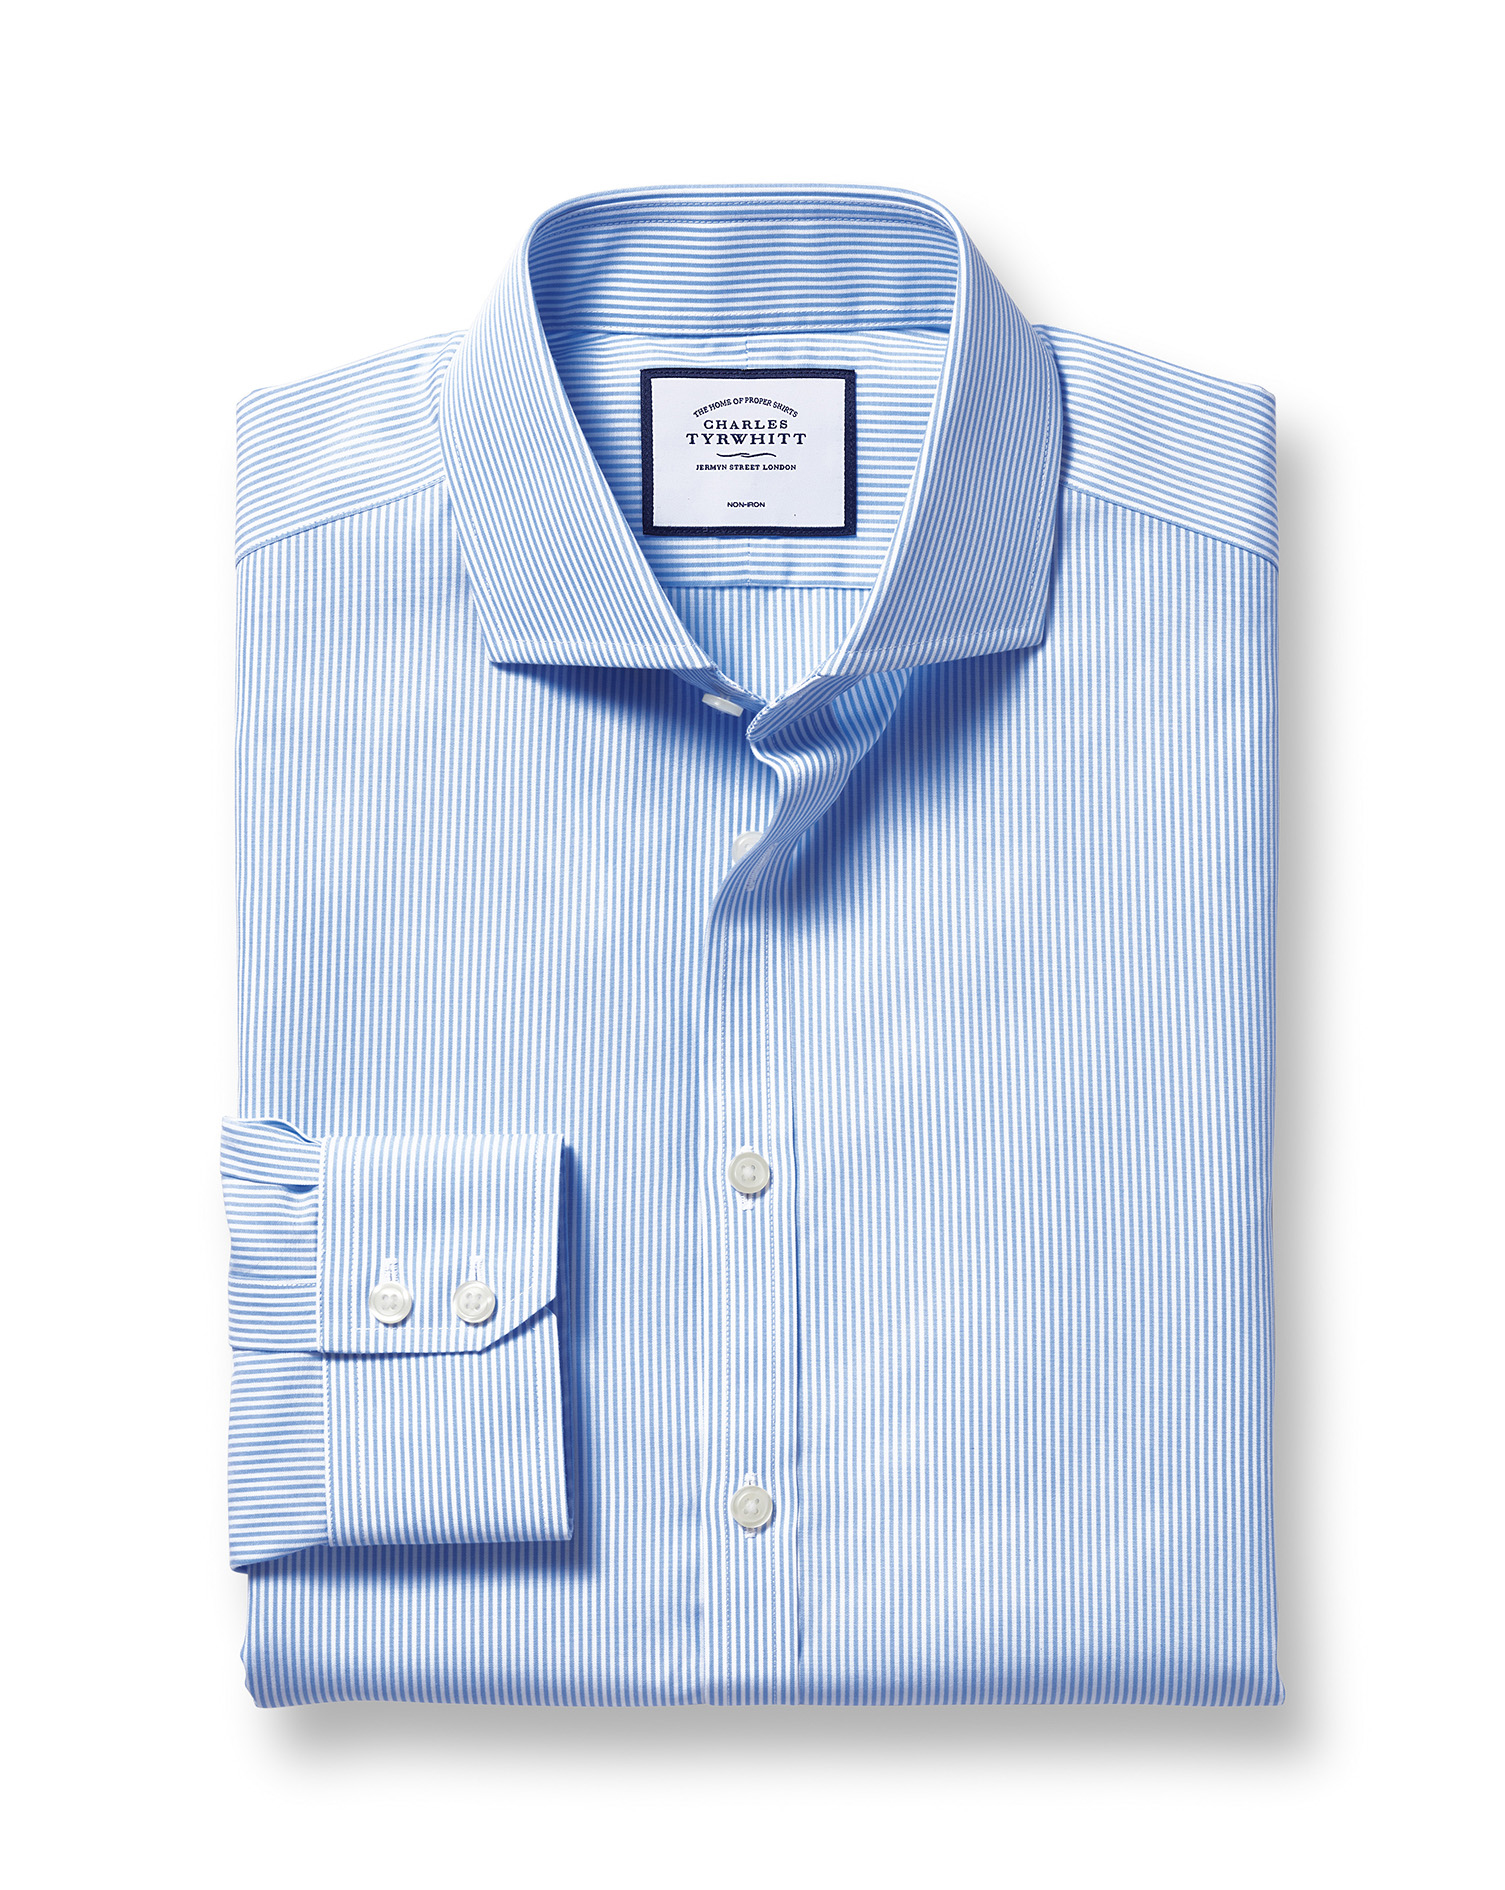 Slim Fit Cutaway Non-Iron Bengal Stripe Sky Blue Cotton Formal Shirt Single Cuff Size 14.5/33 by Cha